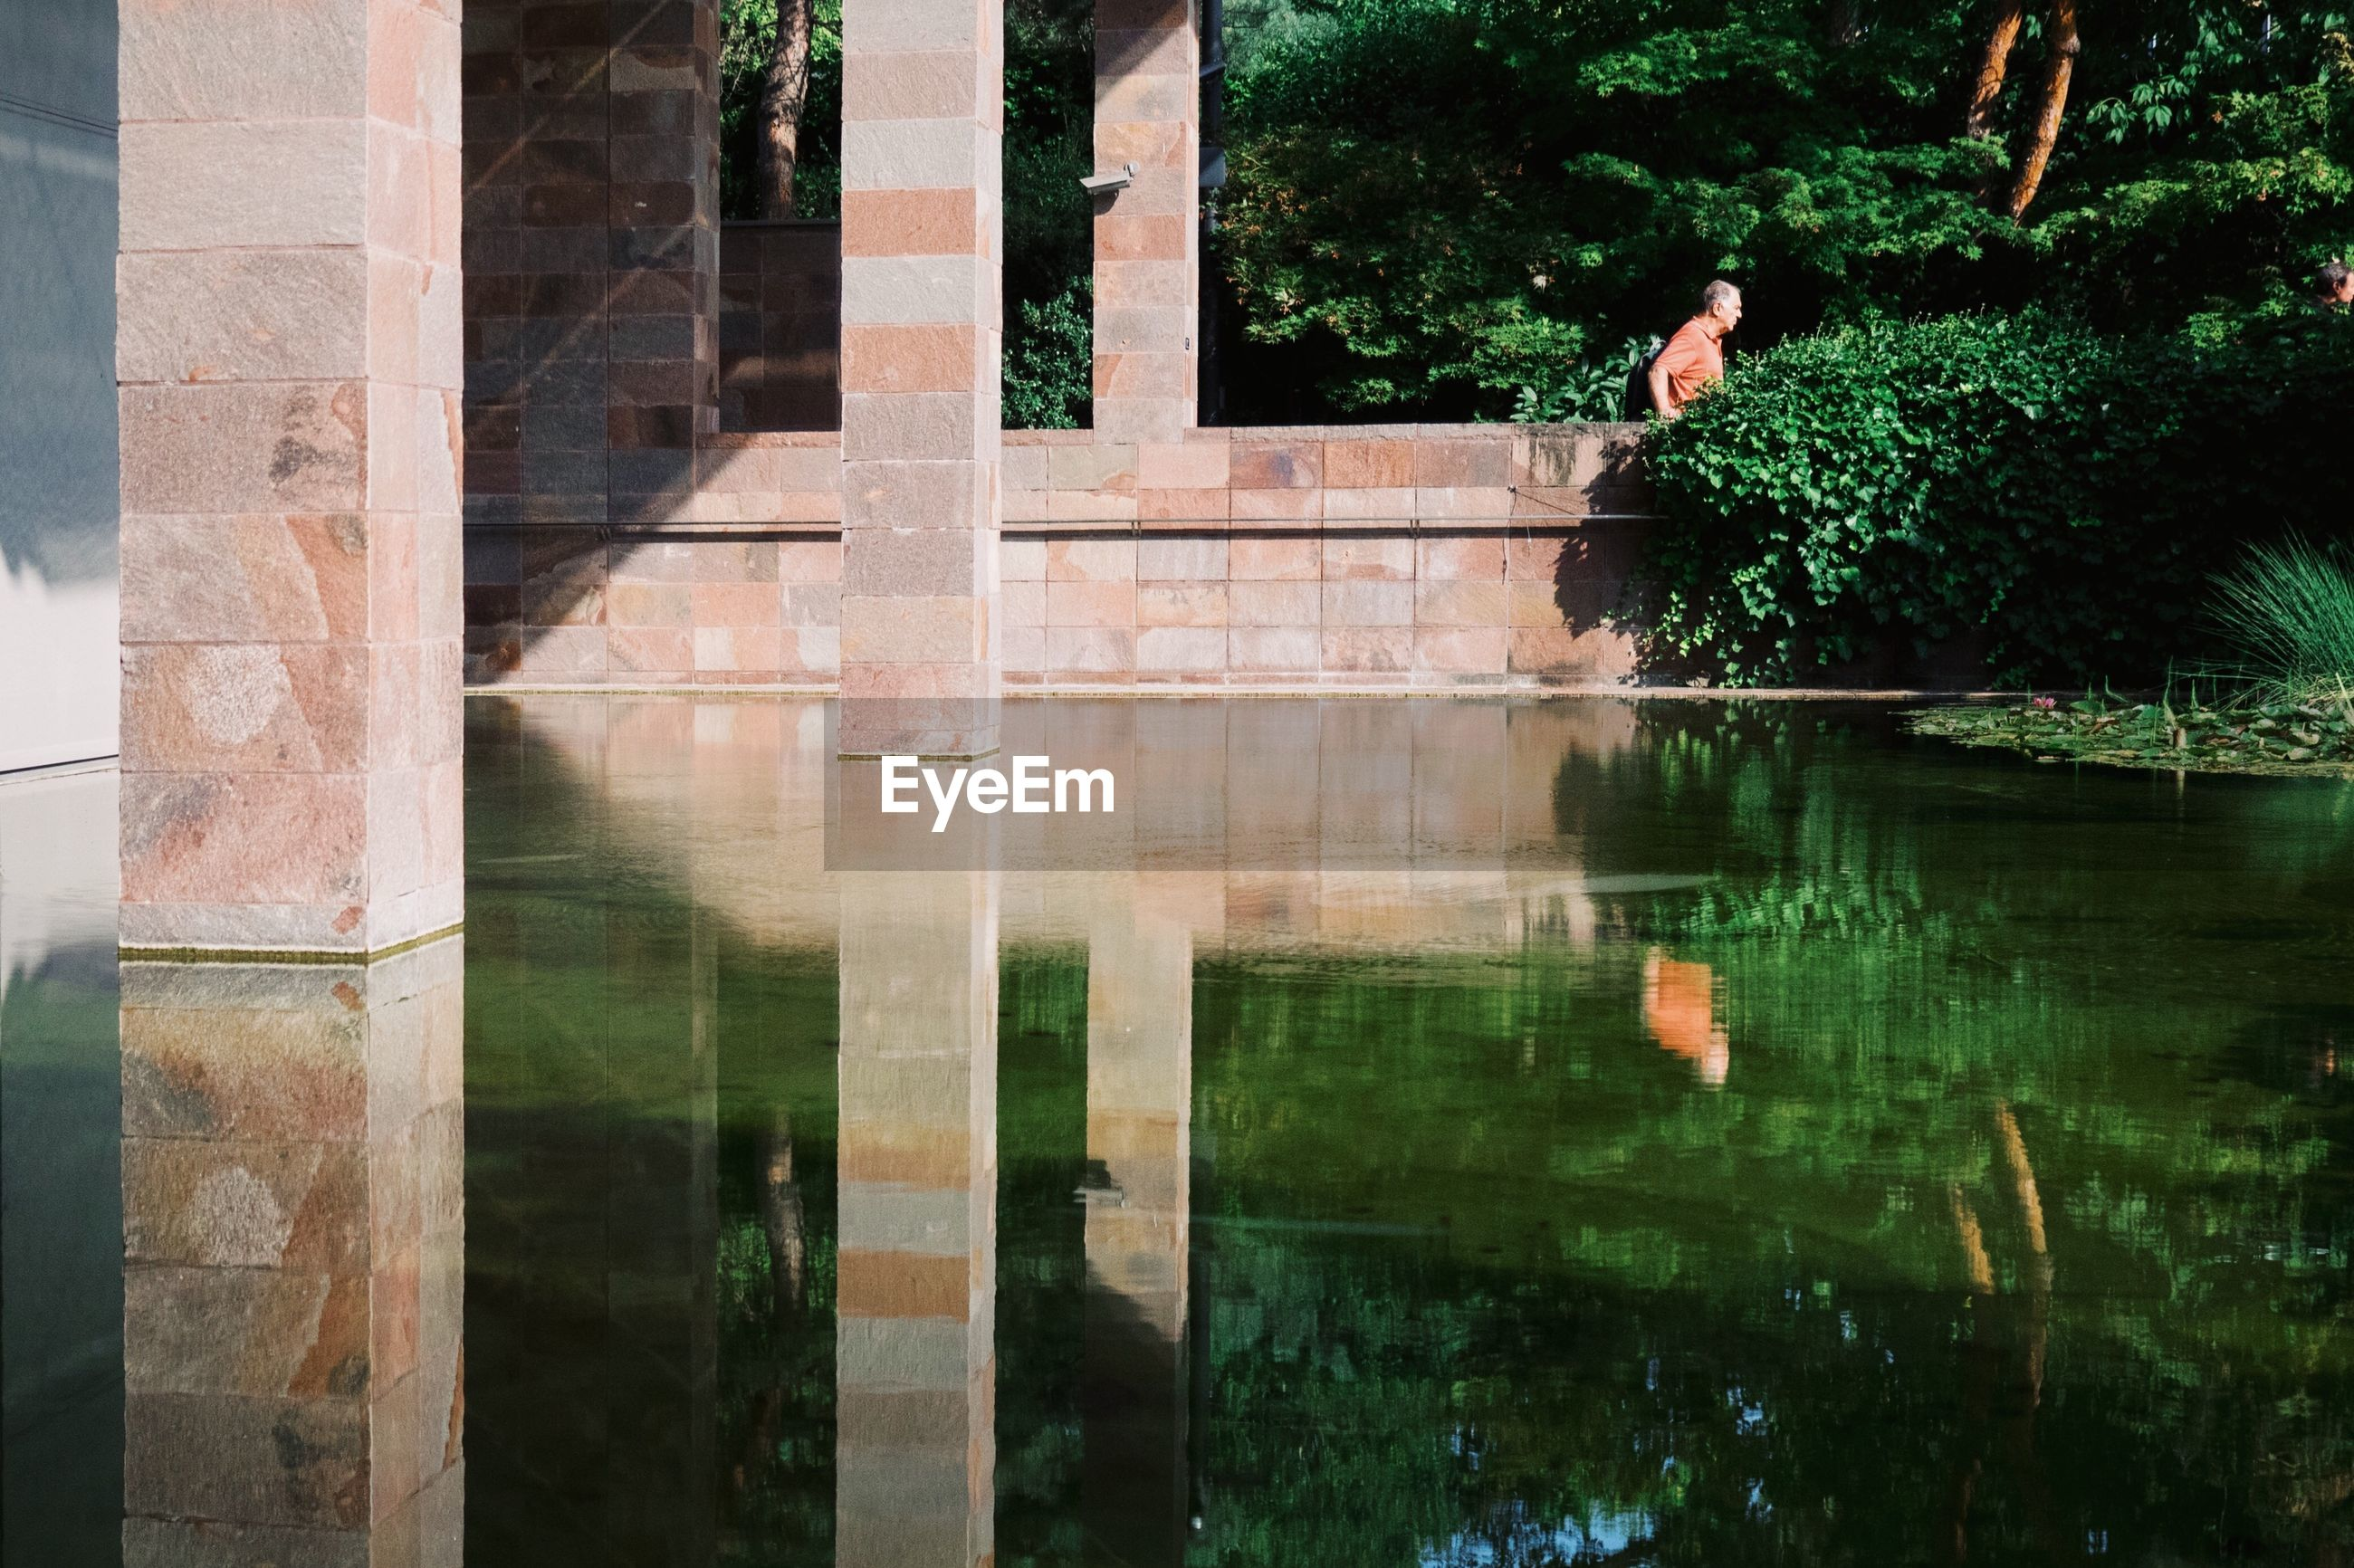 reflection, architecture, built structure, water, lake, nature, plant, tree, day, outdoors, waterfront, one person, building exterior, architectural column, growth, history